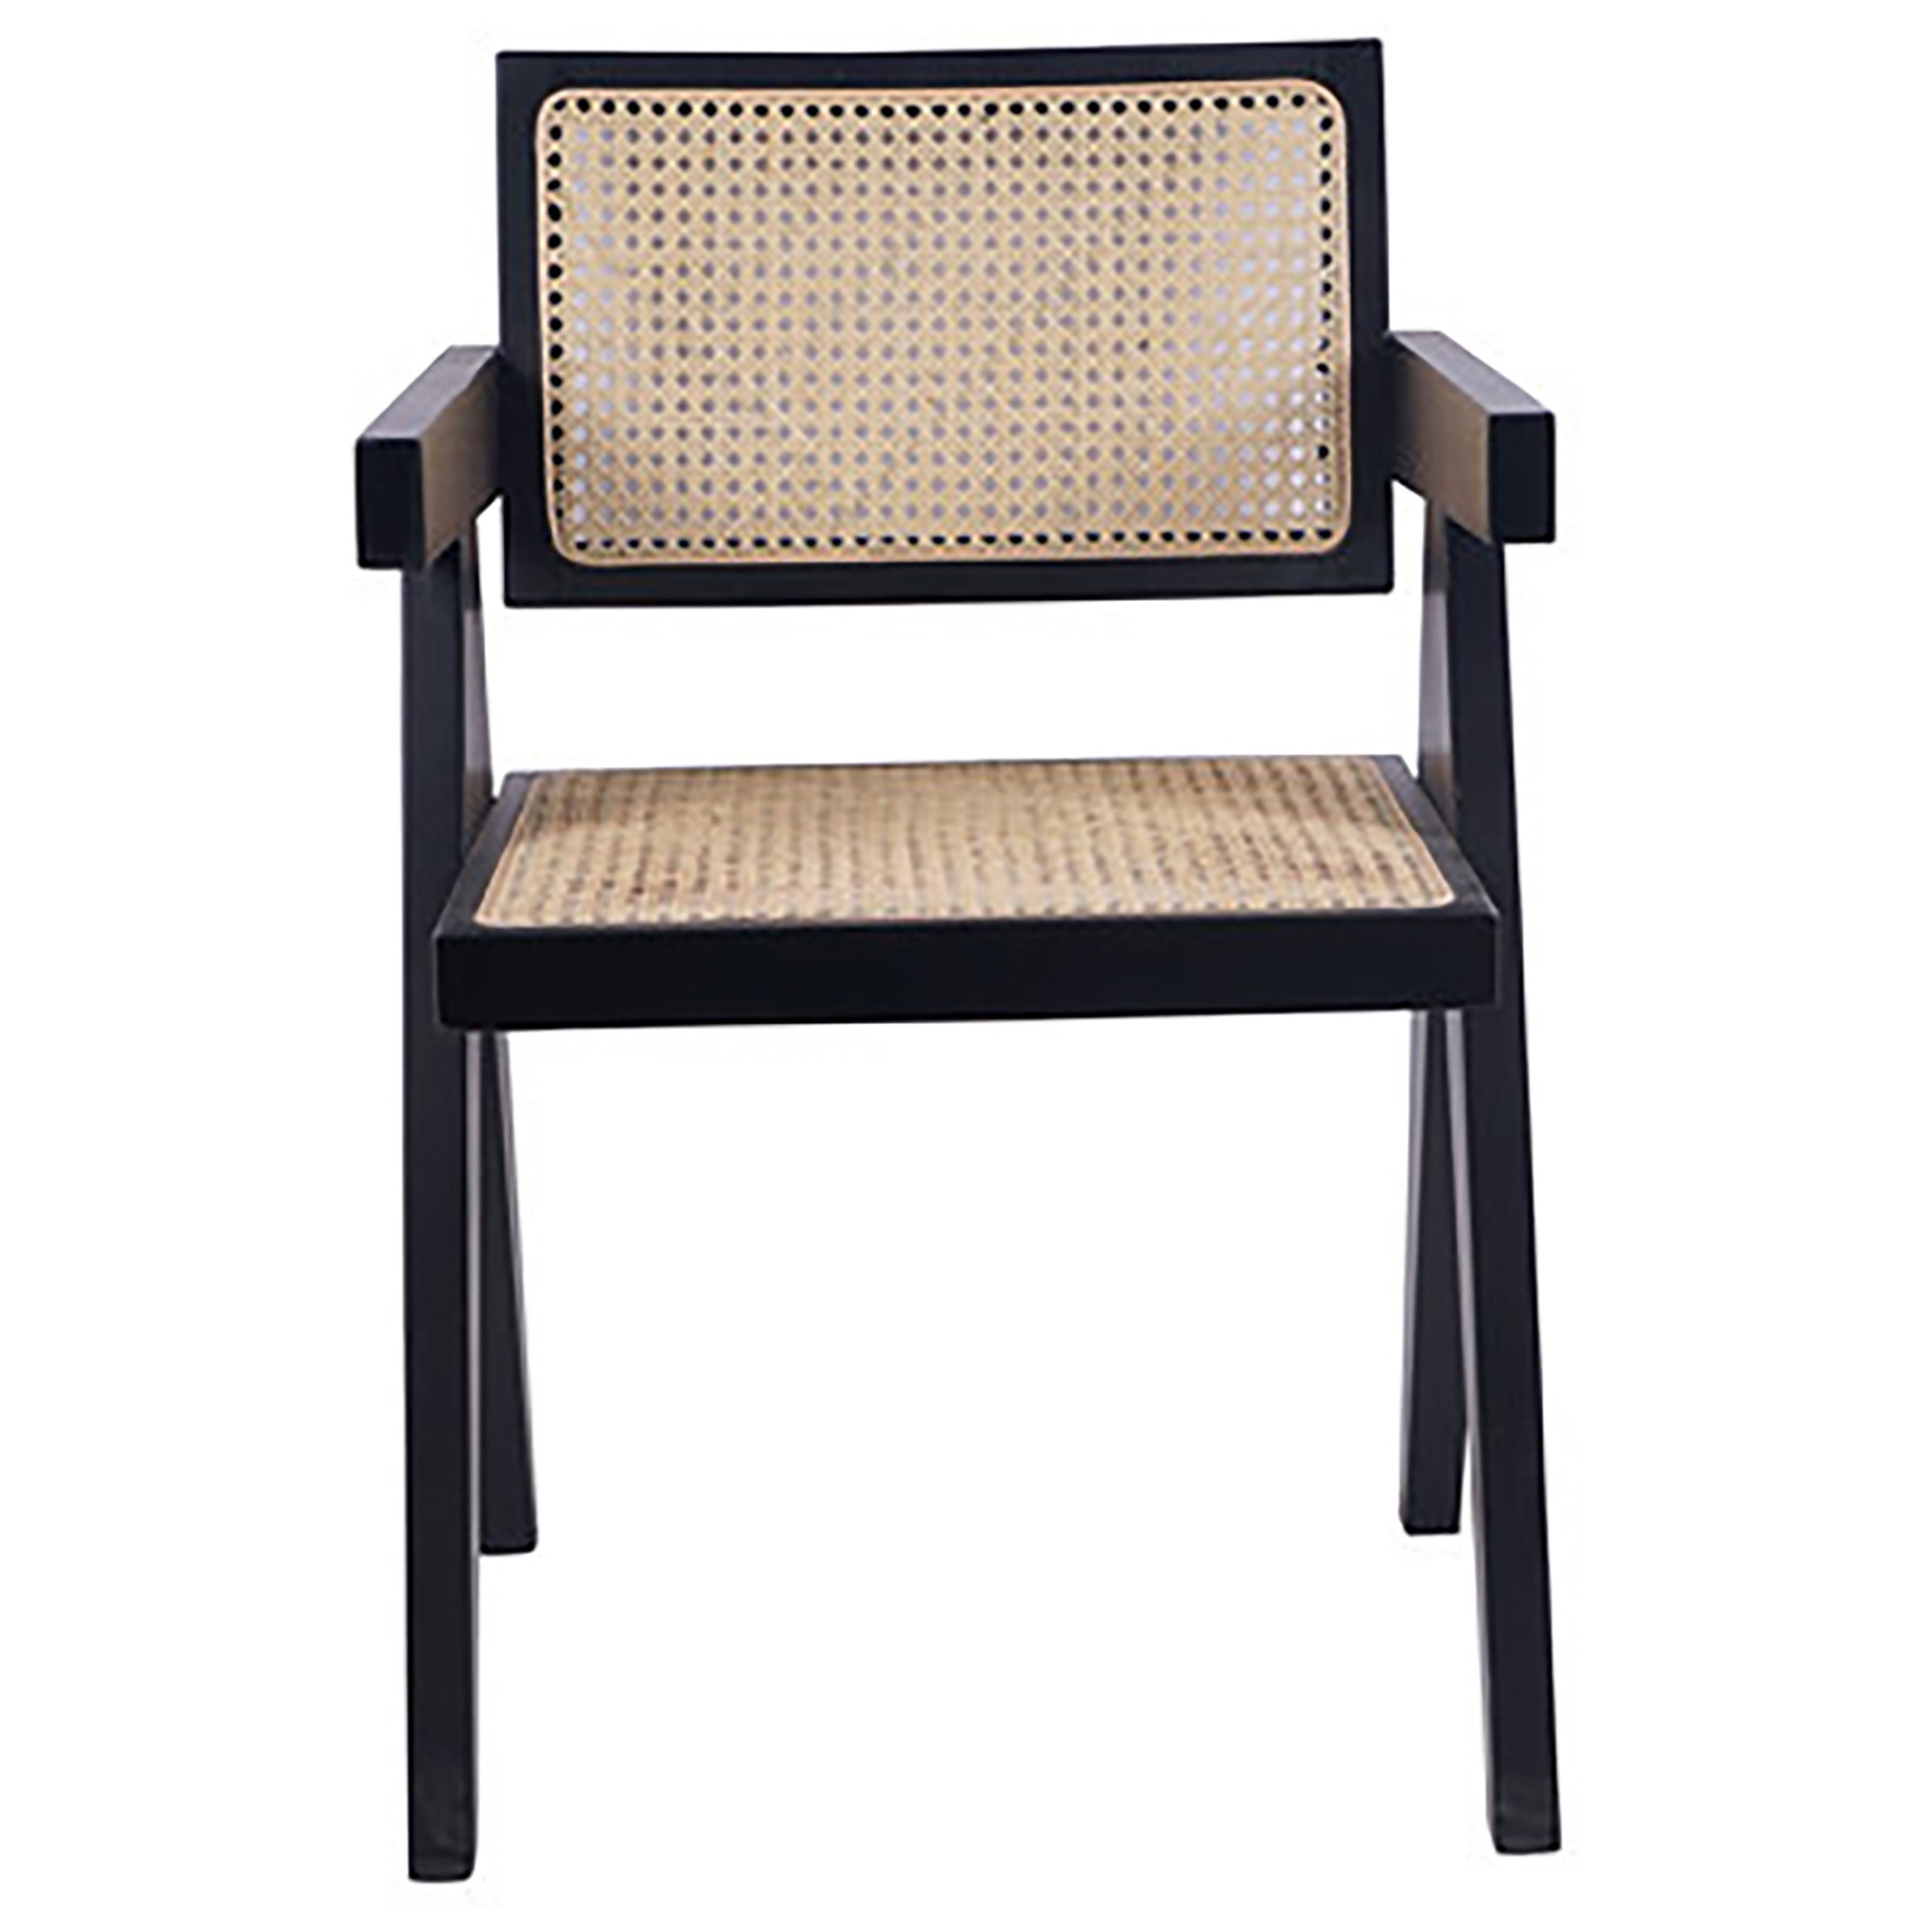 Doyles Beech Timber & Rattan Dining Armchair, Black